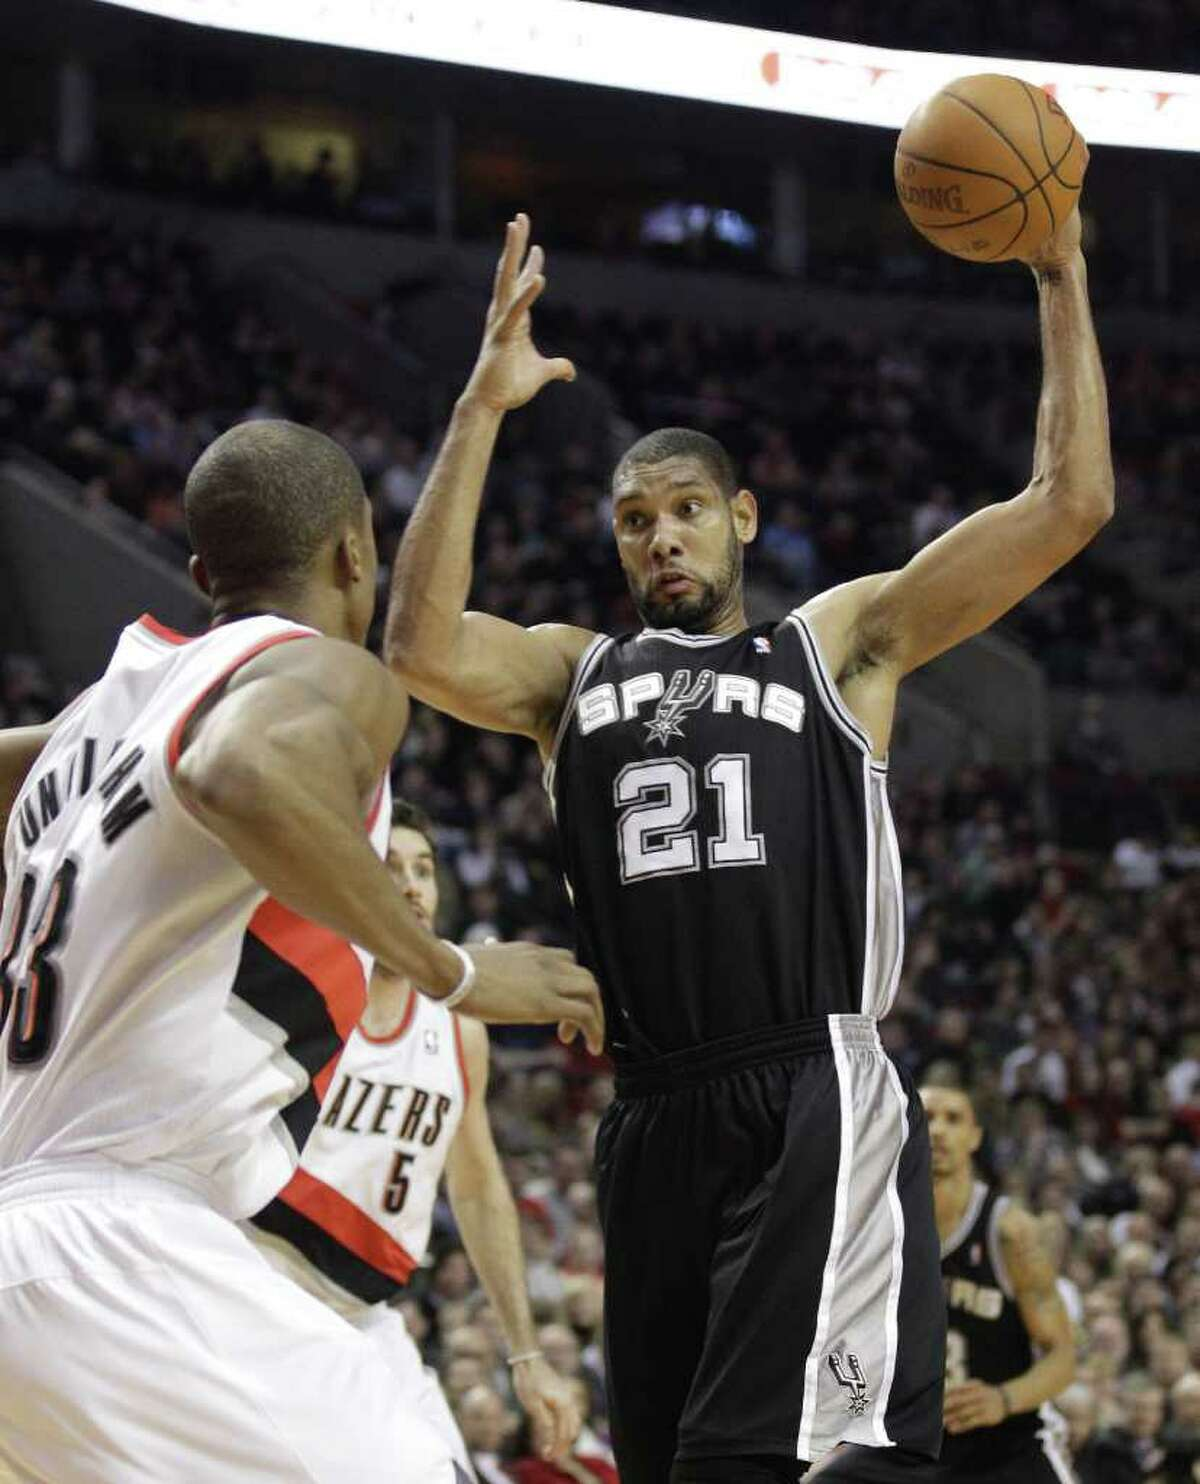 San Antonio Spurs' Tim Duncan (21) pulls down a rebound as Portland Trail Blazers' Dante Cunningham (33) looks on in the first quarter during an NBA basketball game Tuesday, Feb. 1, 2011, in Portland, Ore.